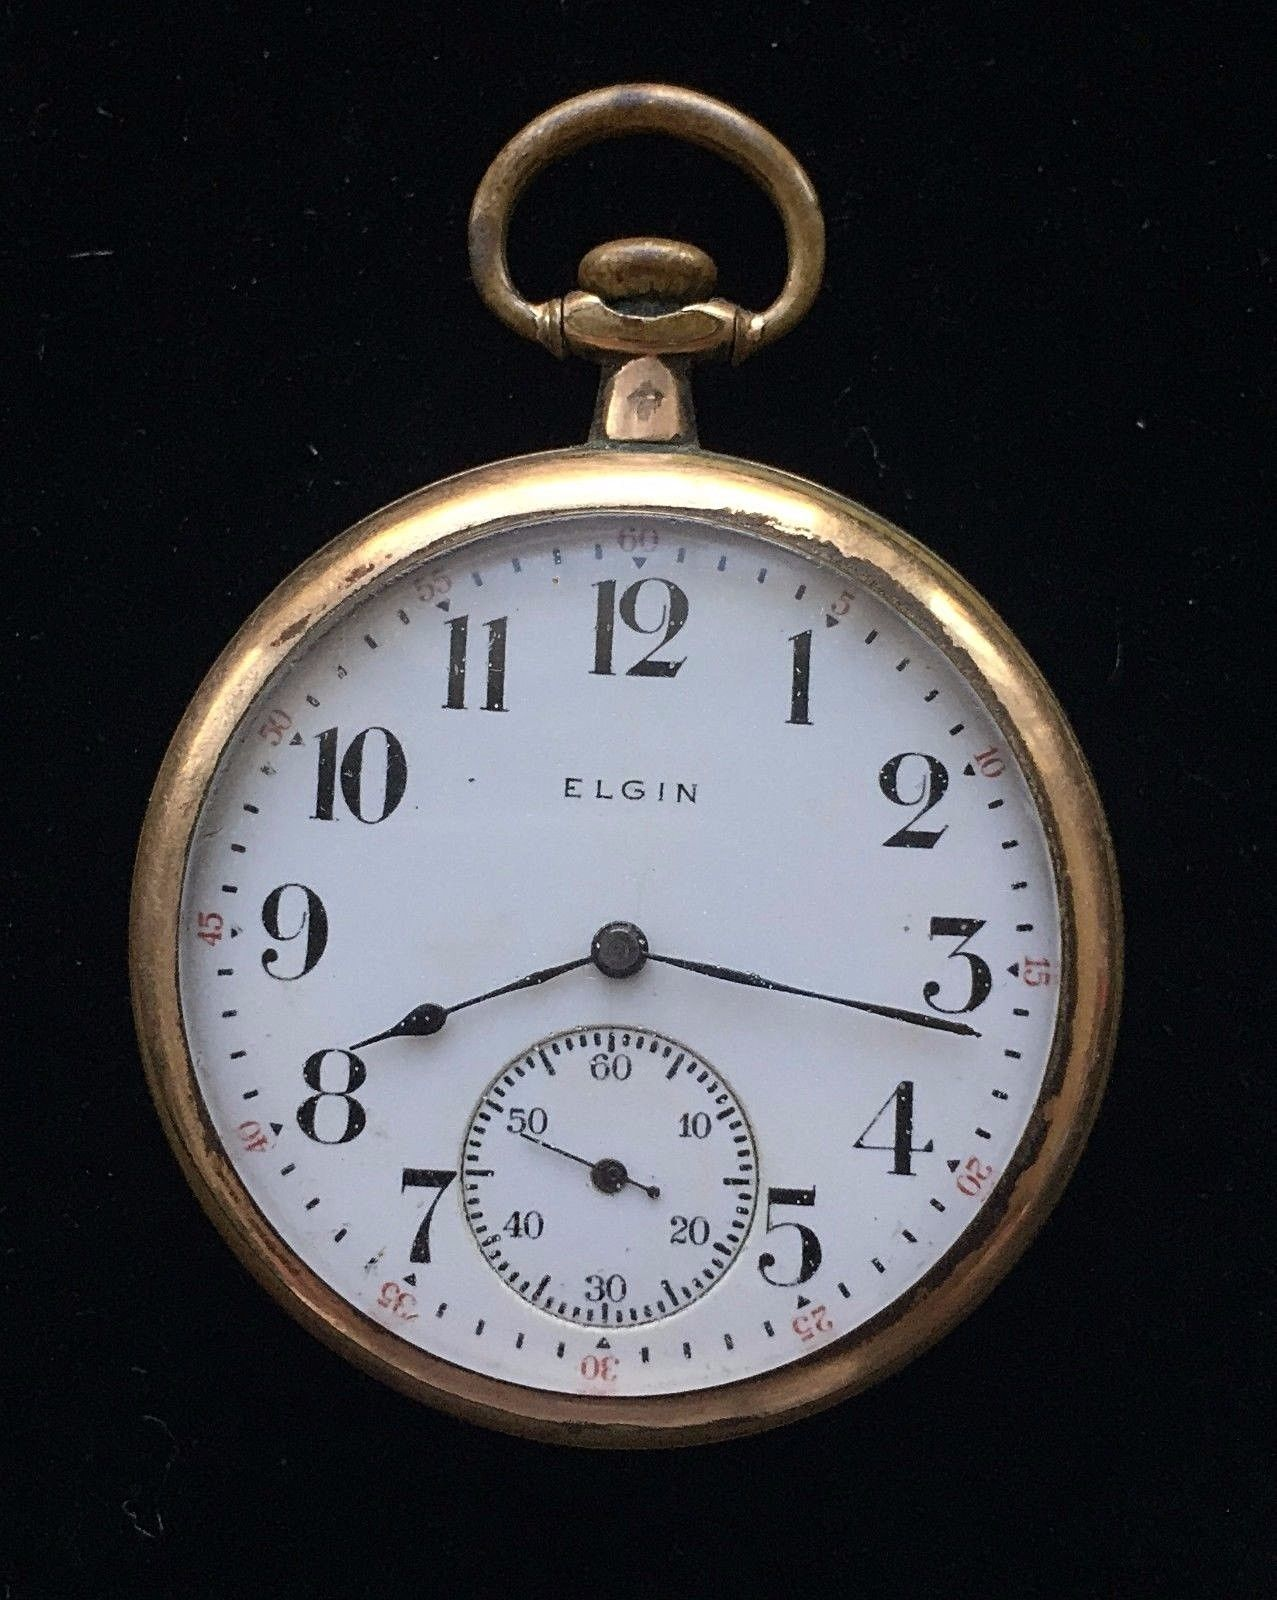 Primary image for Antique Gold-Filled 1912 ELGIN Pocket Watch - 1 3/4 inches - FREE SHIPPING